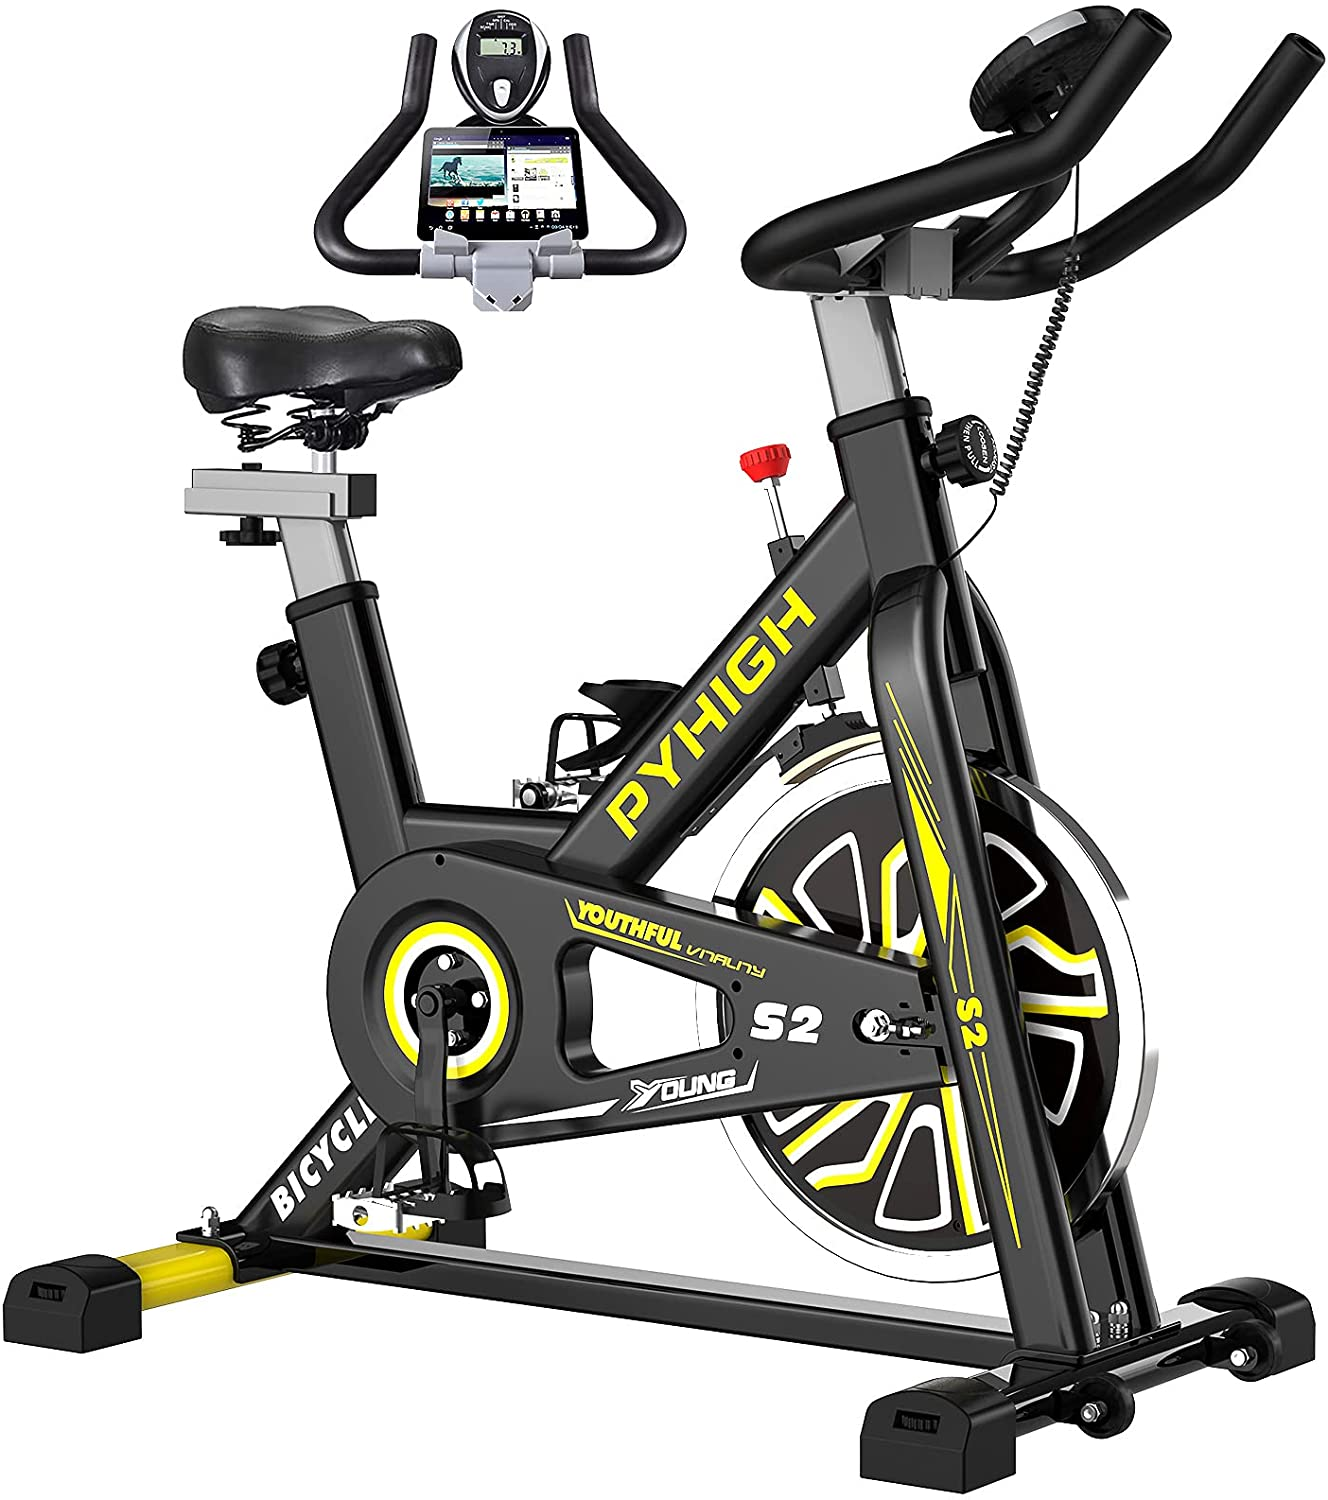 pyhigh indoor cycling bike, best Christmas gifts